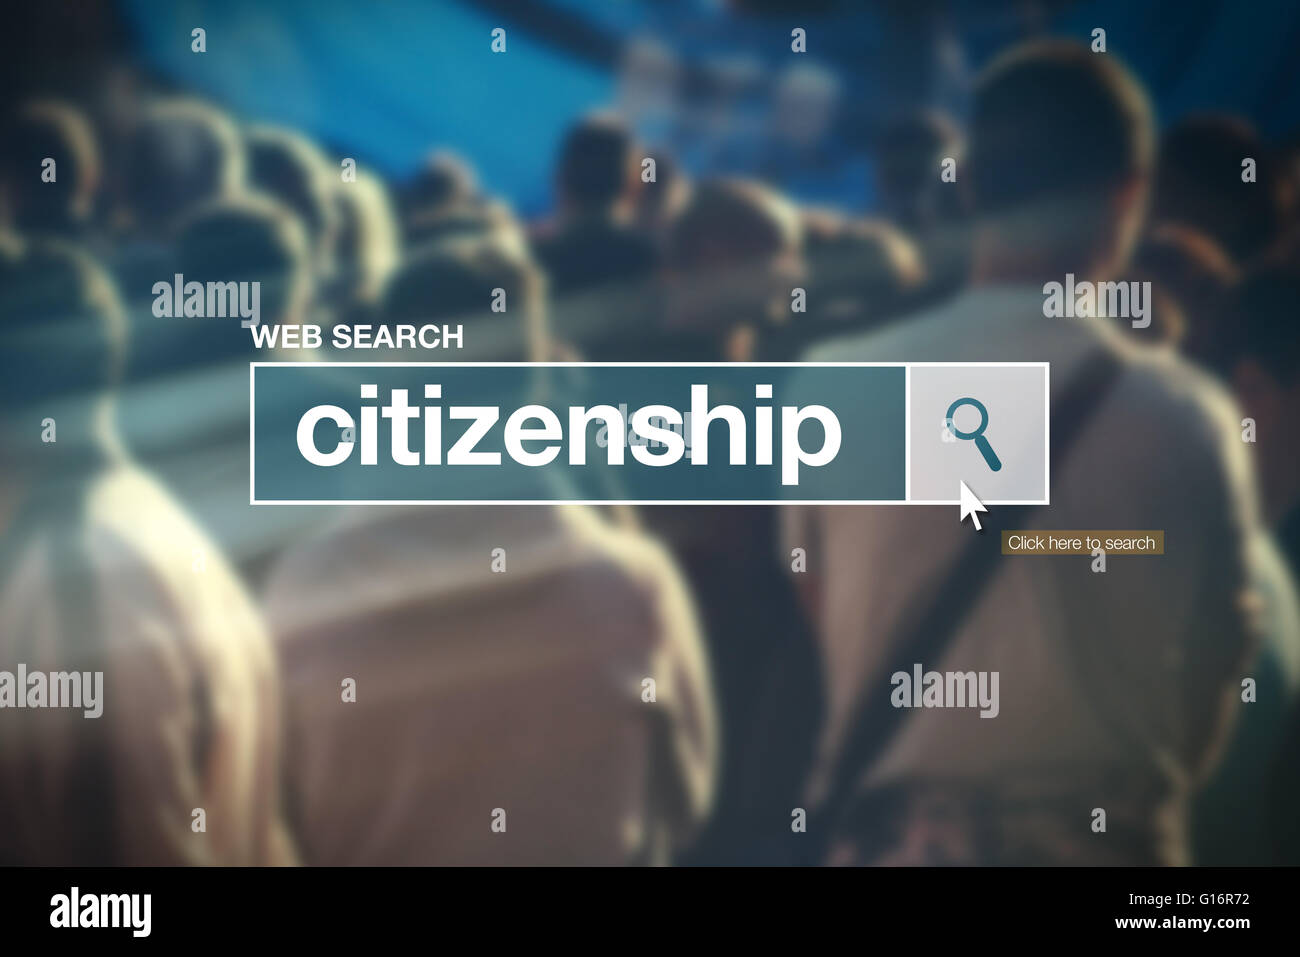 Citizenship - web search bar glossary term on internet - Stock Image